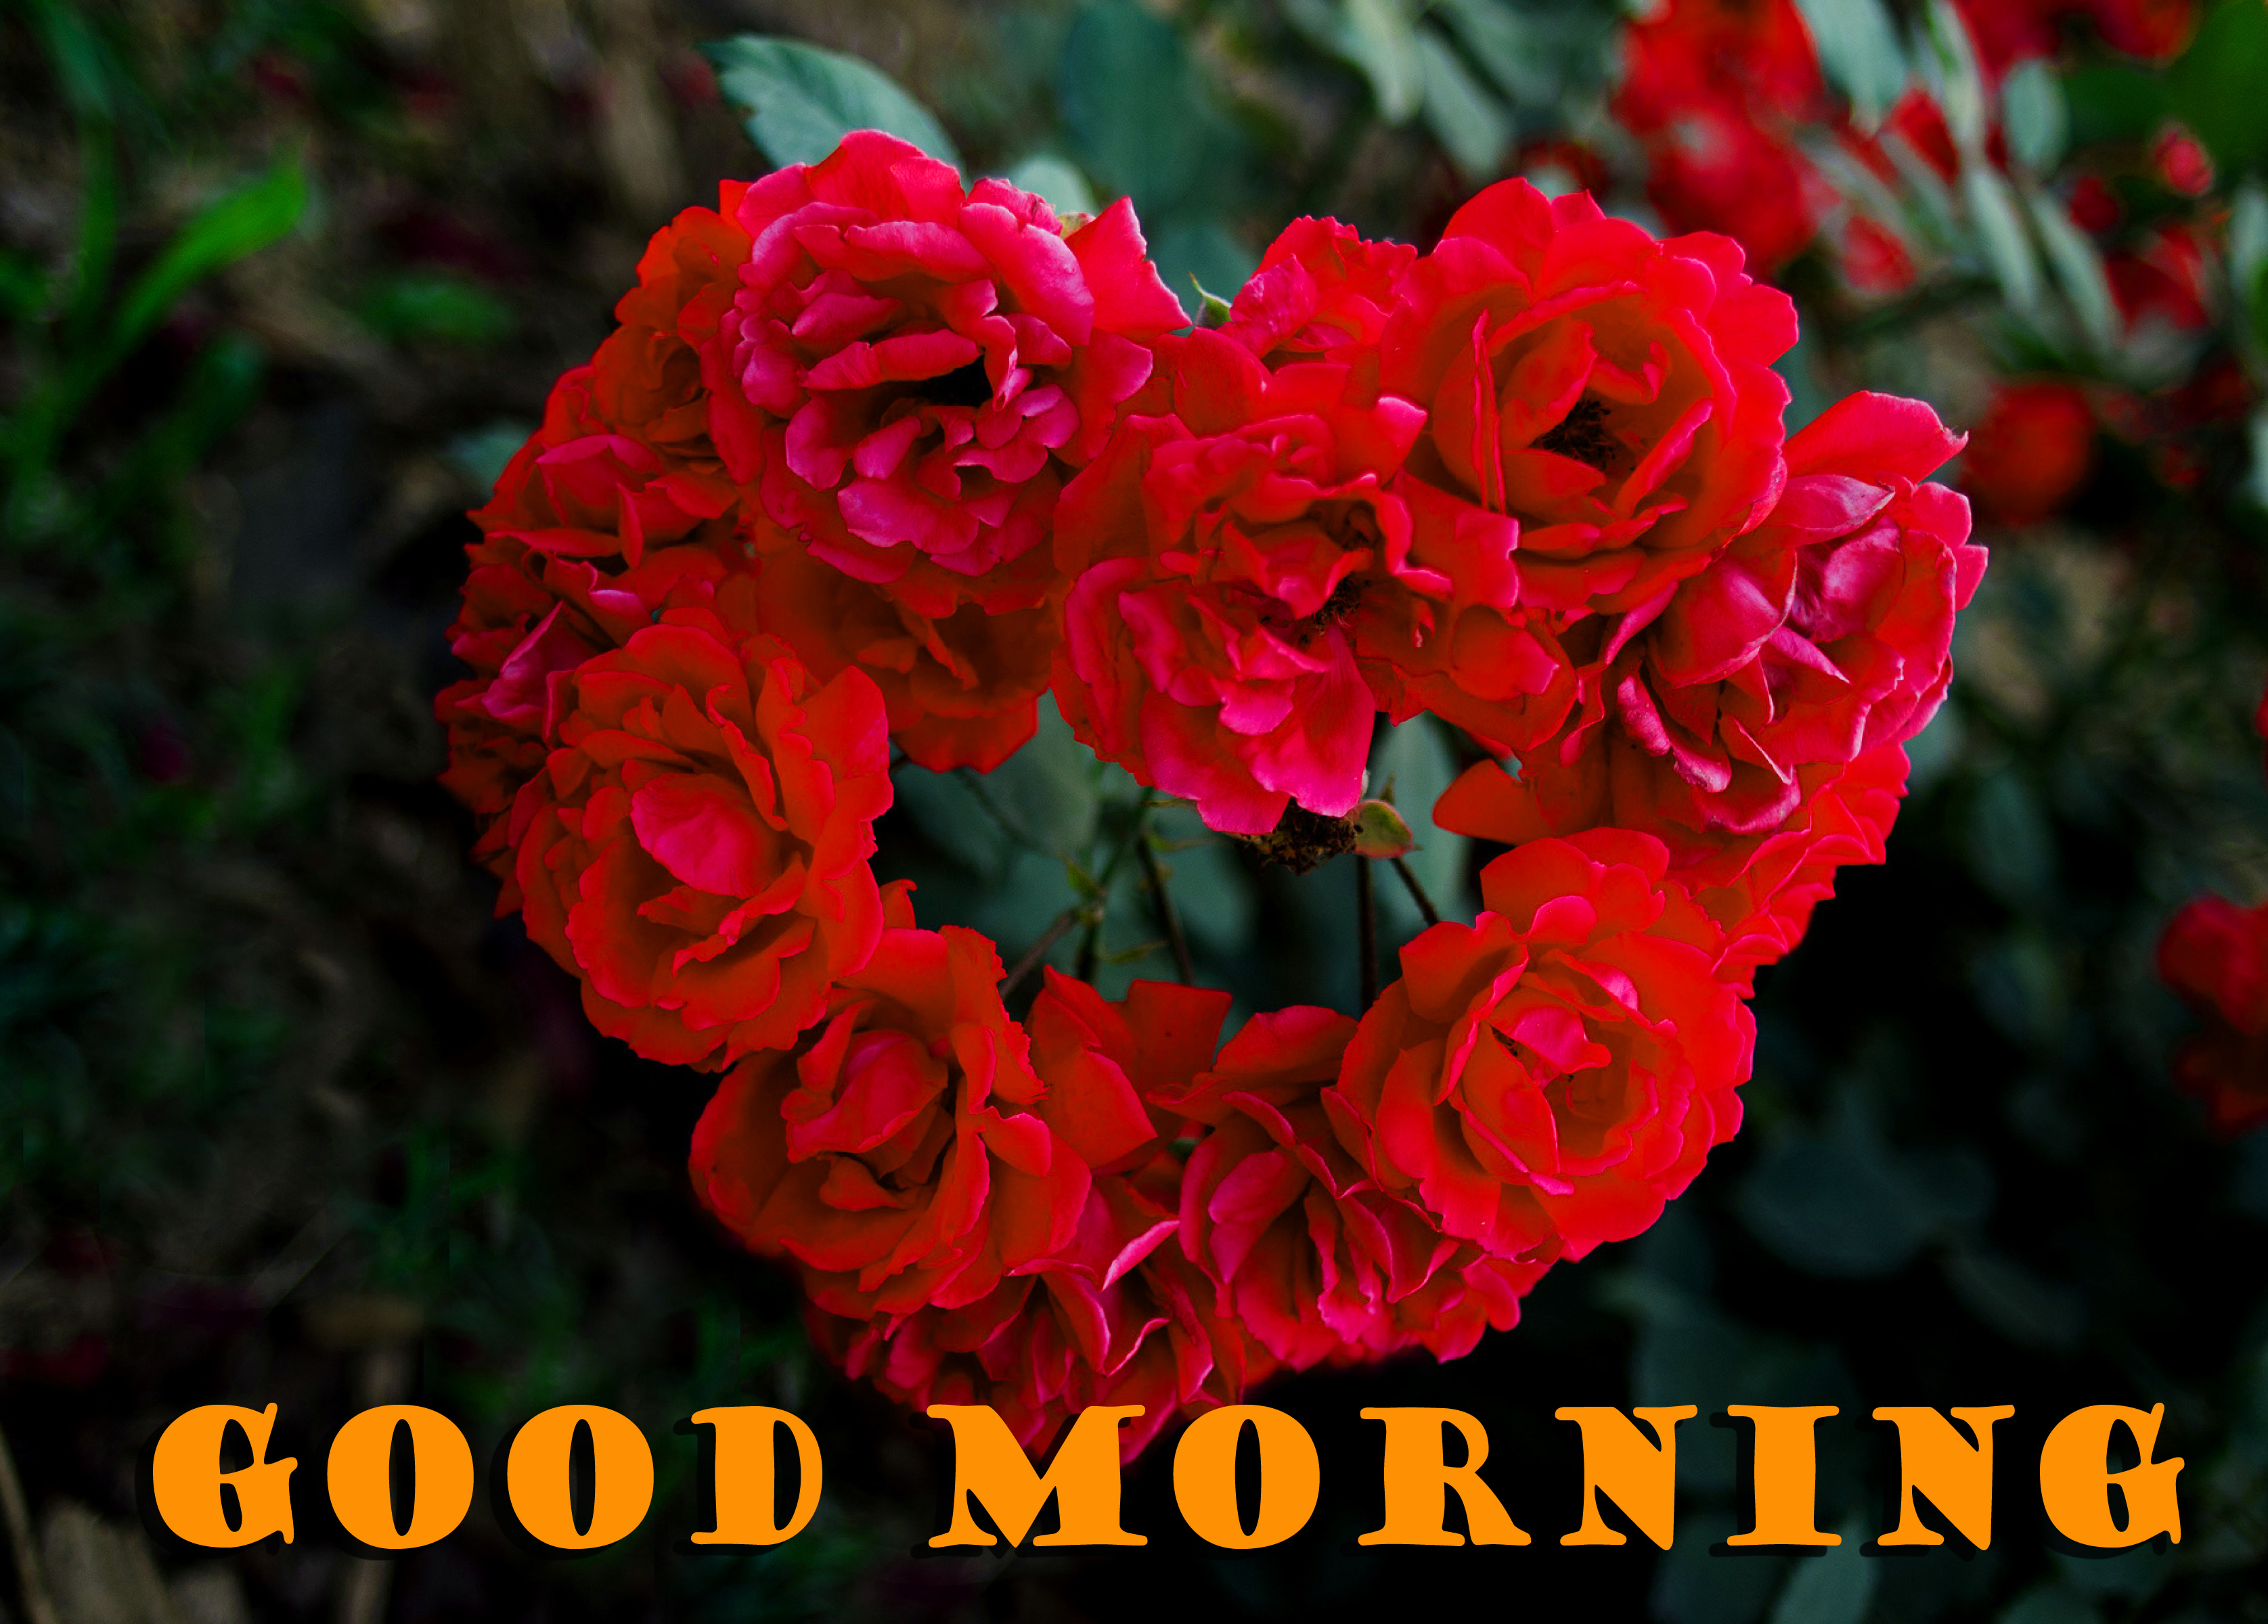 Good Morning Red Rose Pictures Images Download